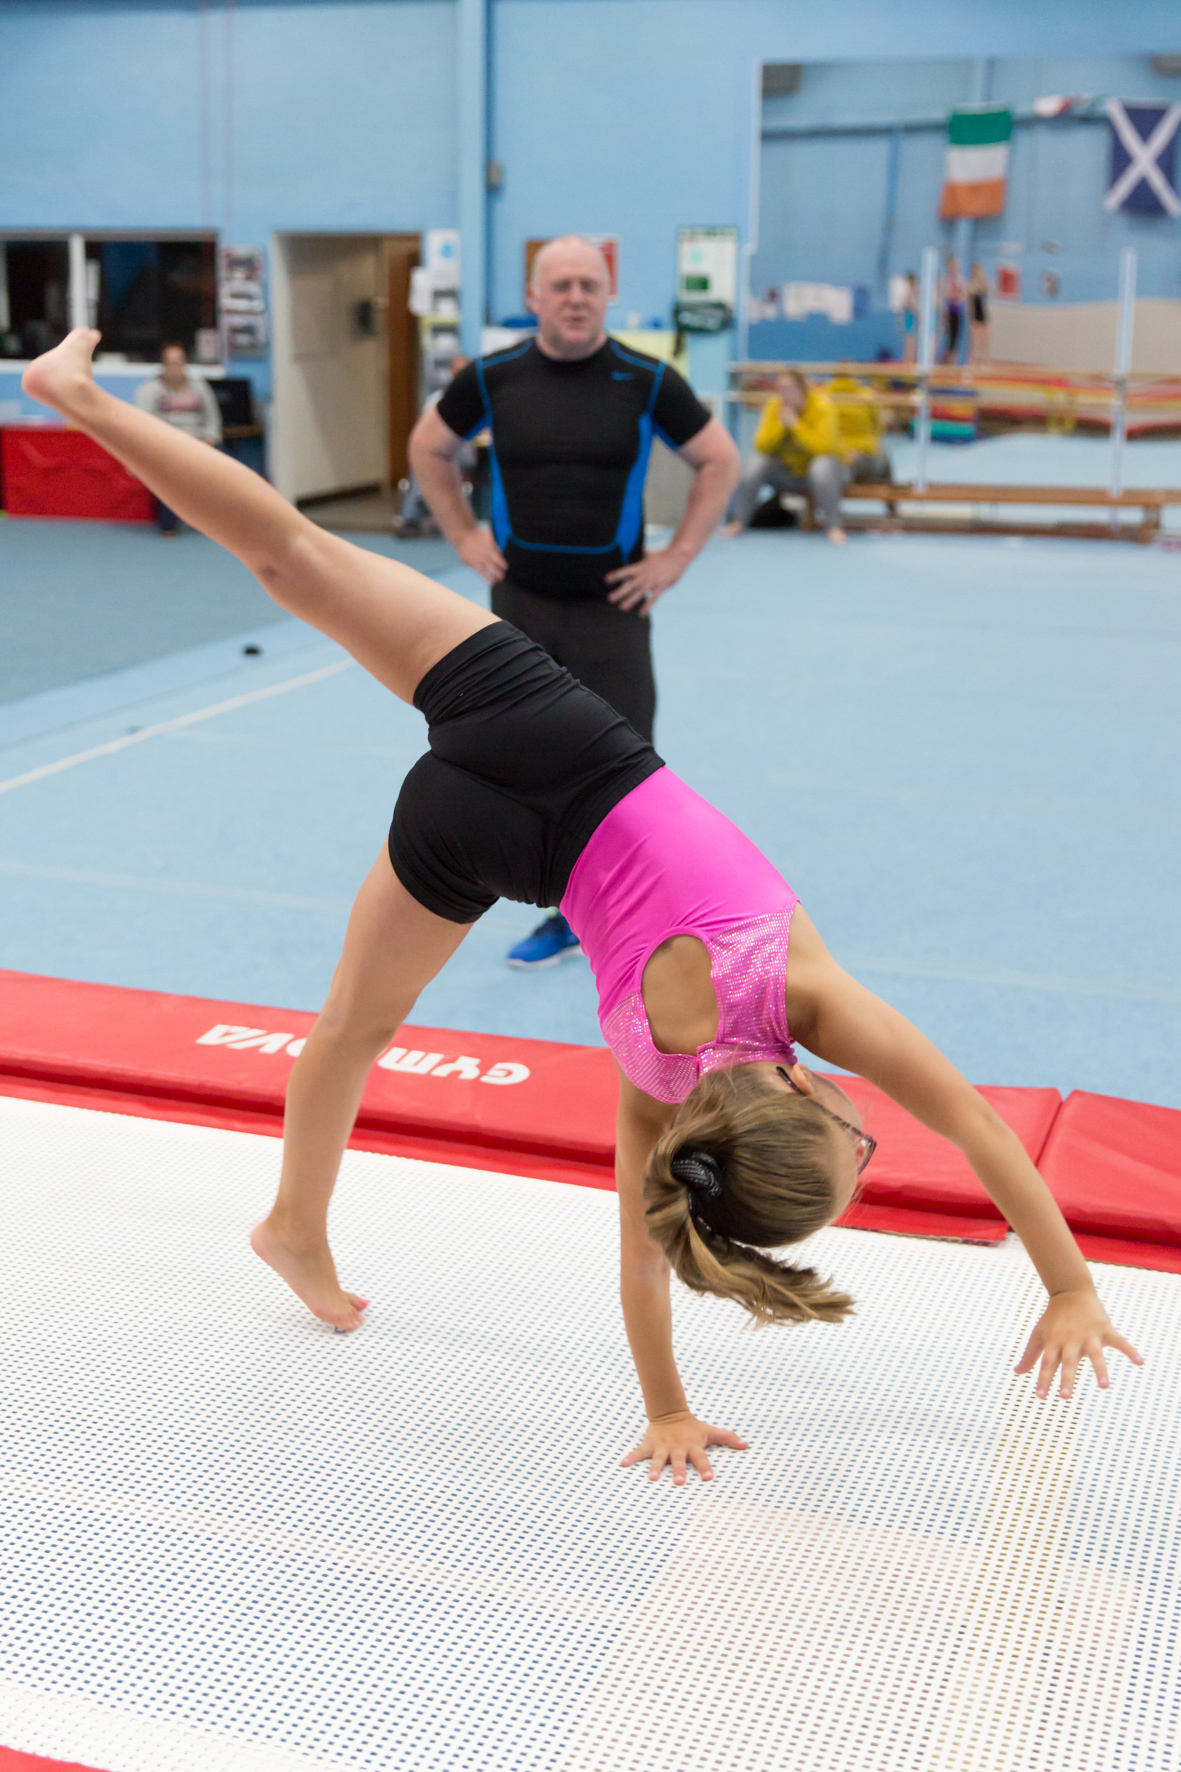 Southampton Gymnastics Club Offers Tumbling